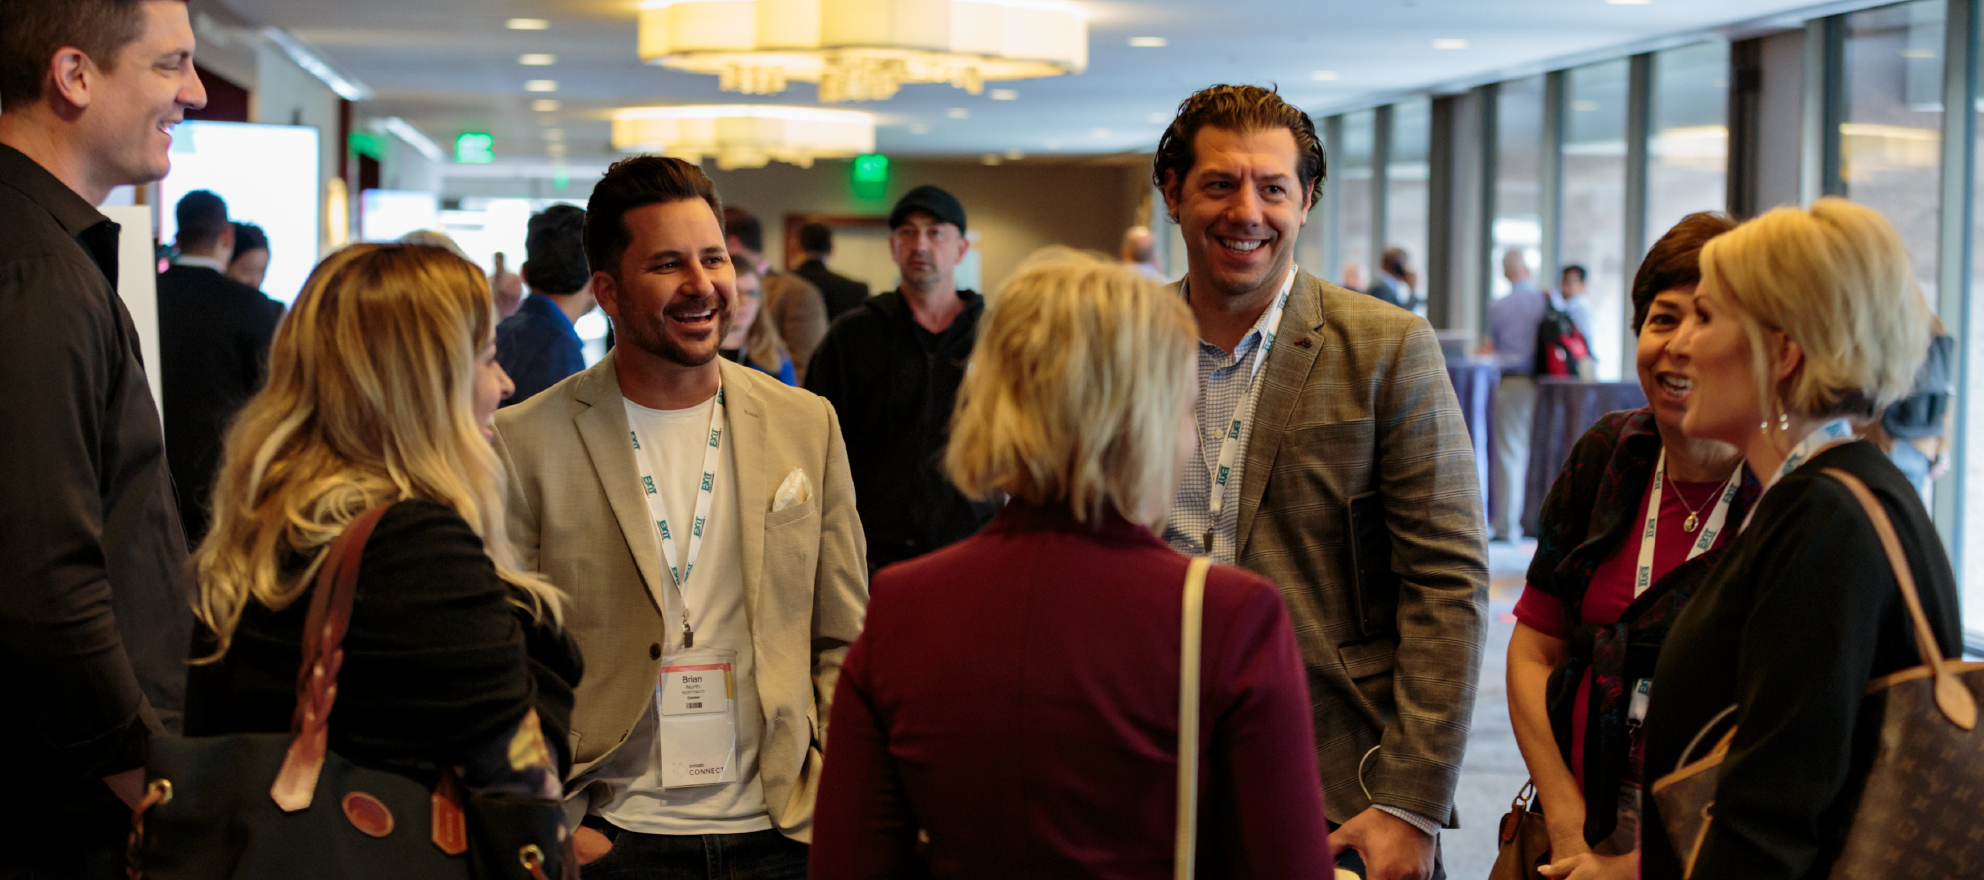 Connect Las Vegas: Top 10 networking tips